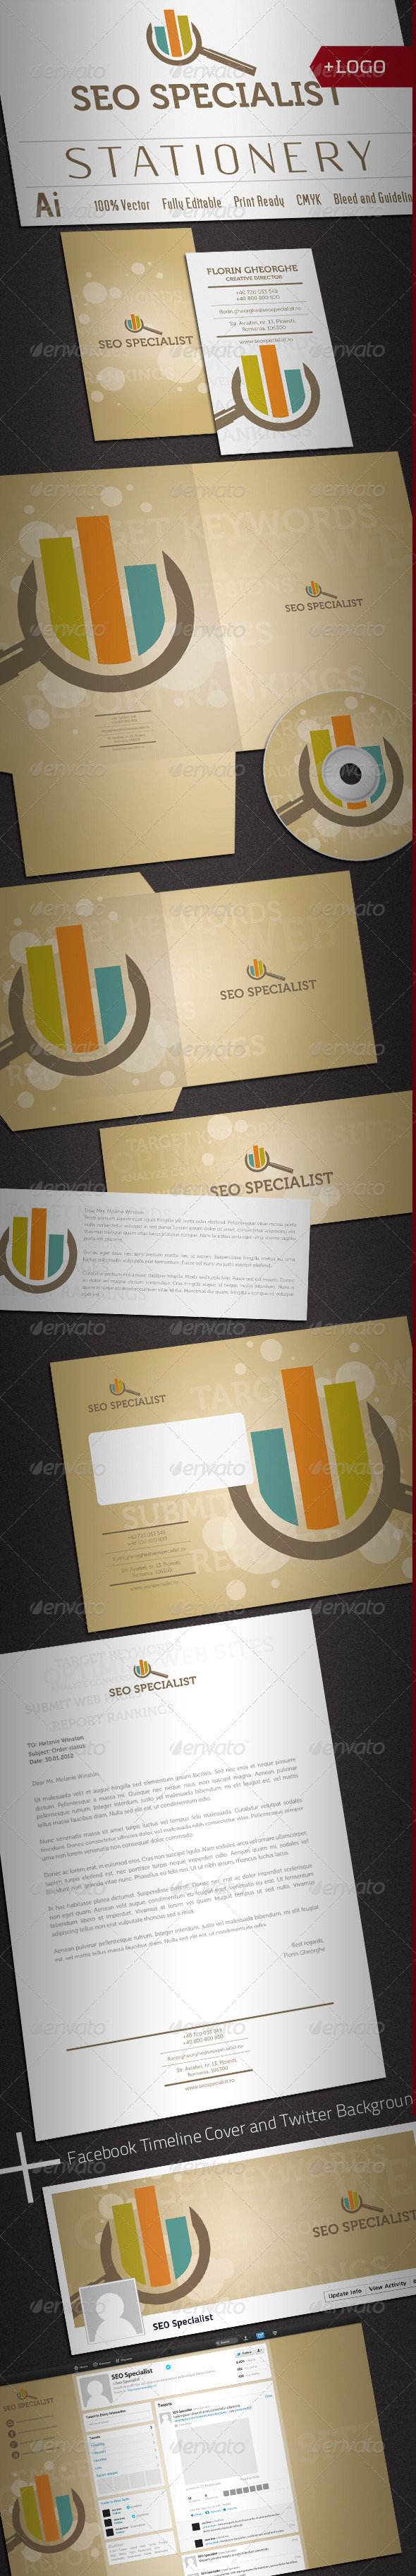 GraphicRiver Seo Specialist Stationery 2248766